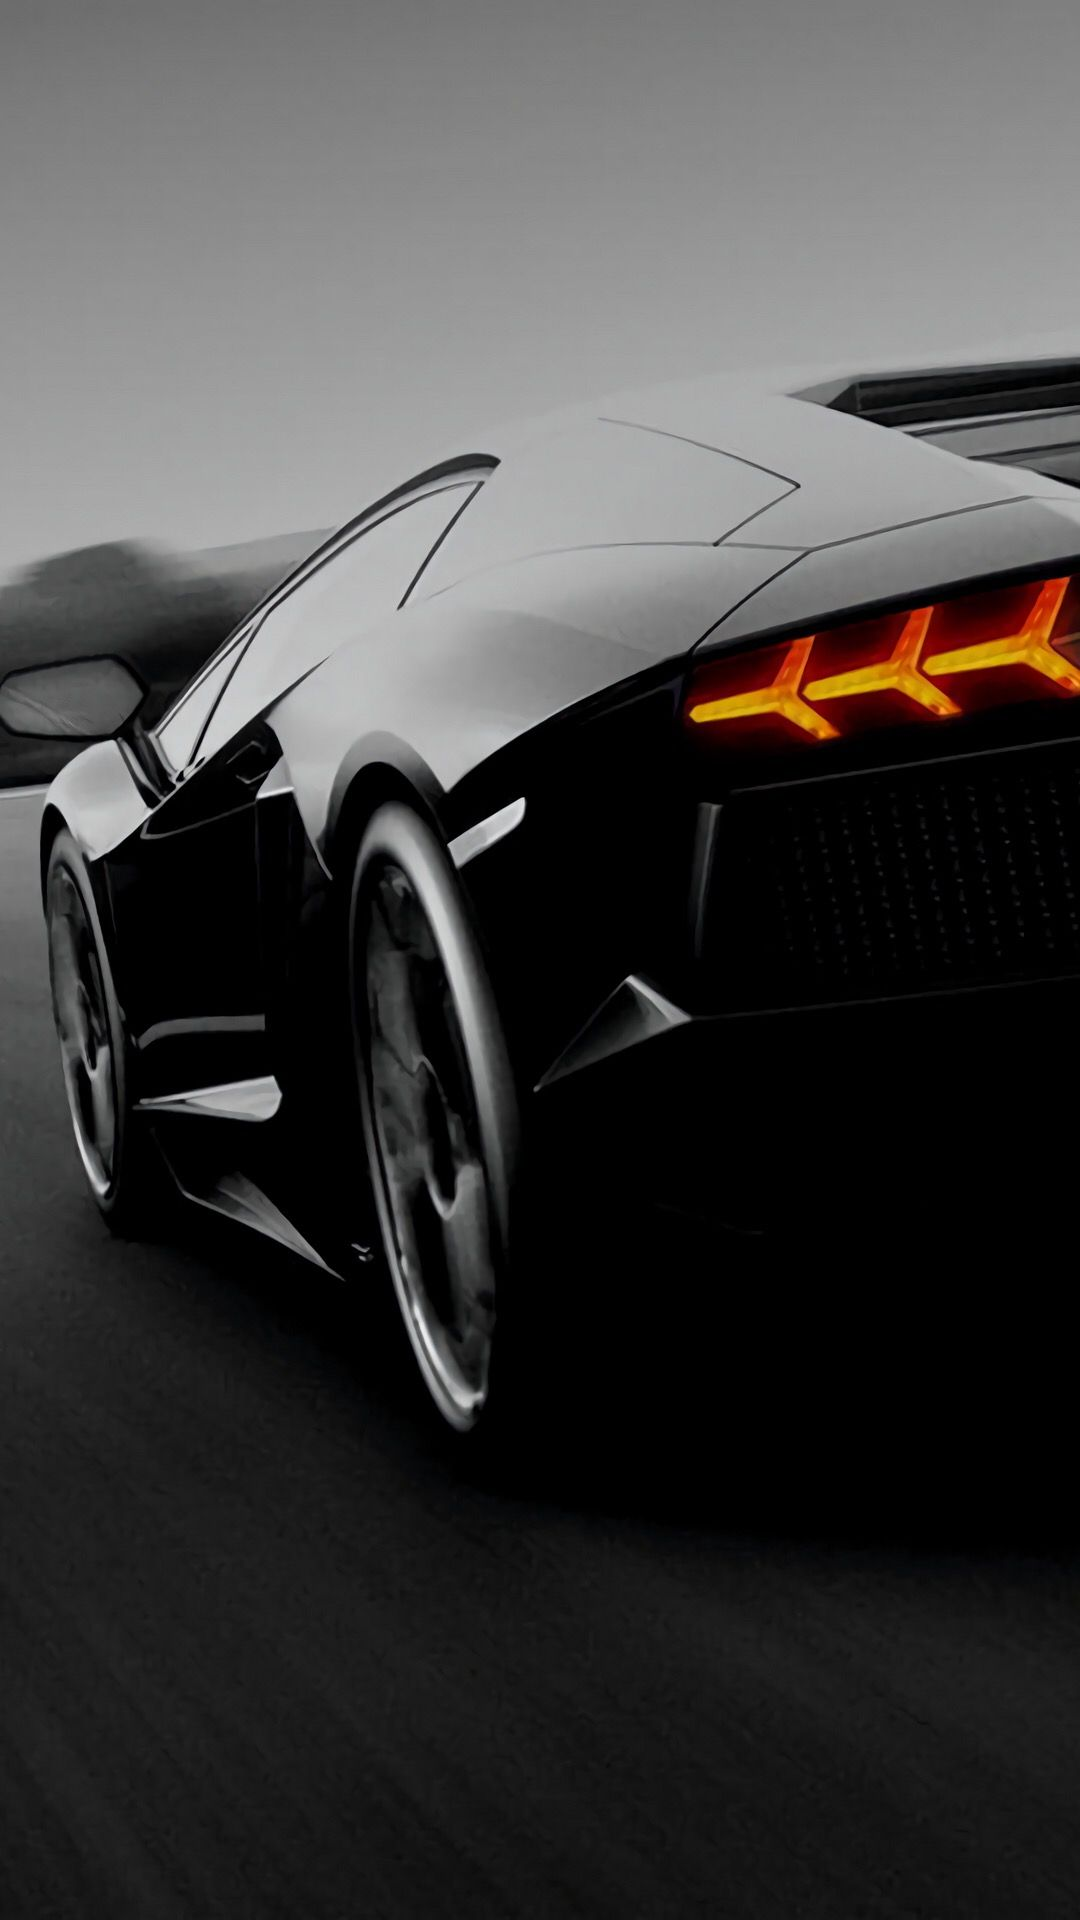 Pin By Carvi Vorovath On Automobile Lamborghini Lamborghini